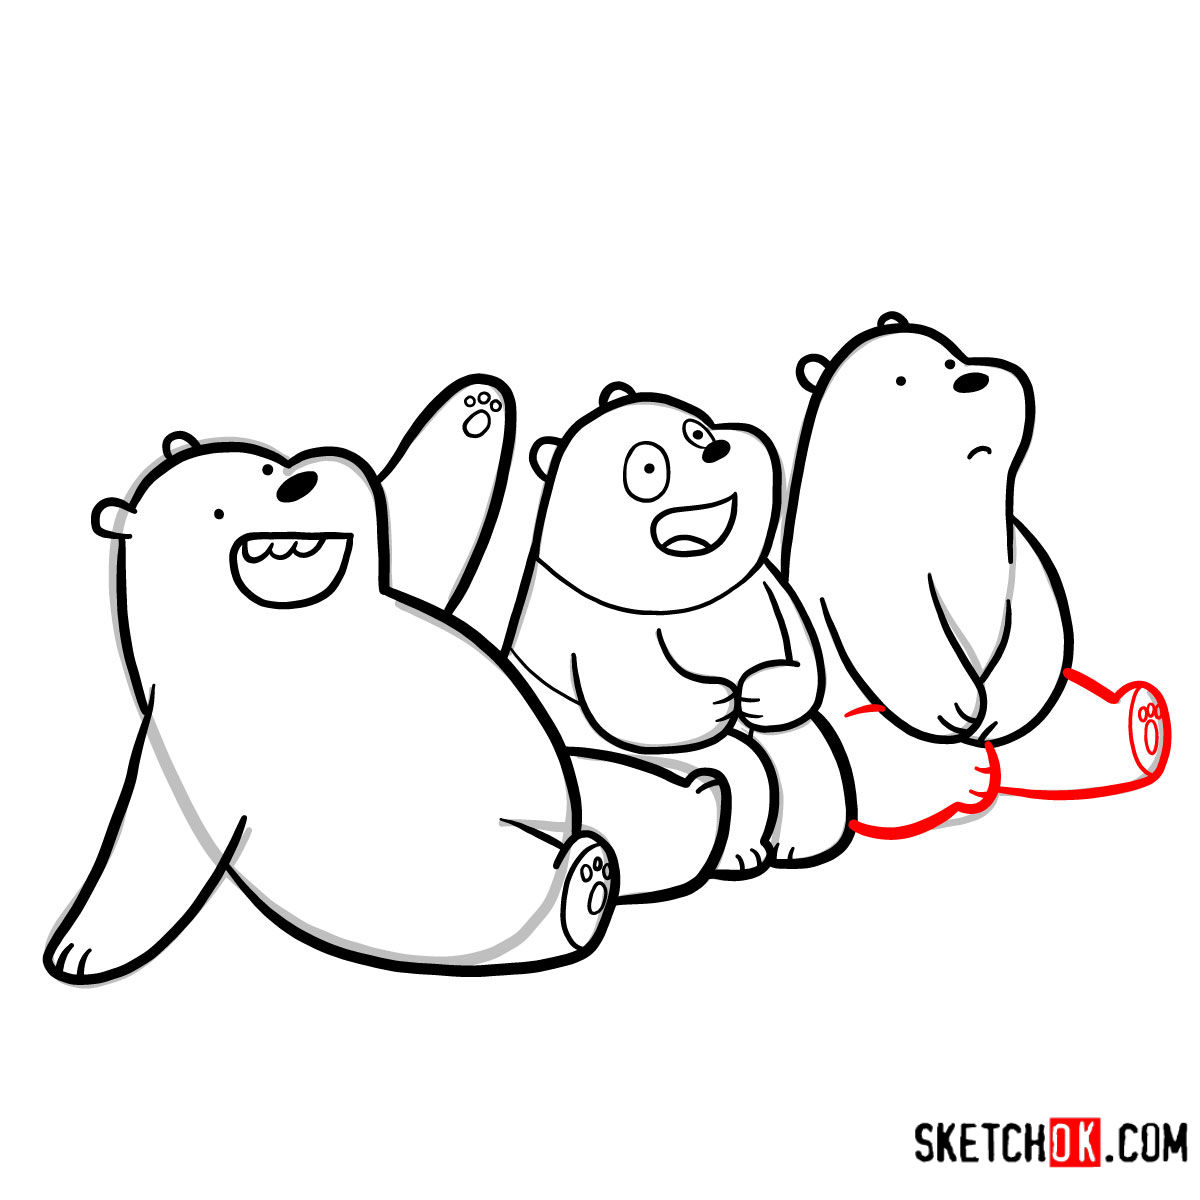 How to draw all three bears together | We Bare Bears - step 20